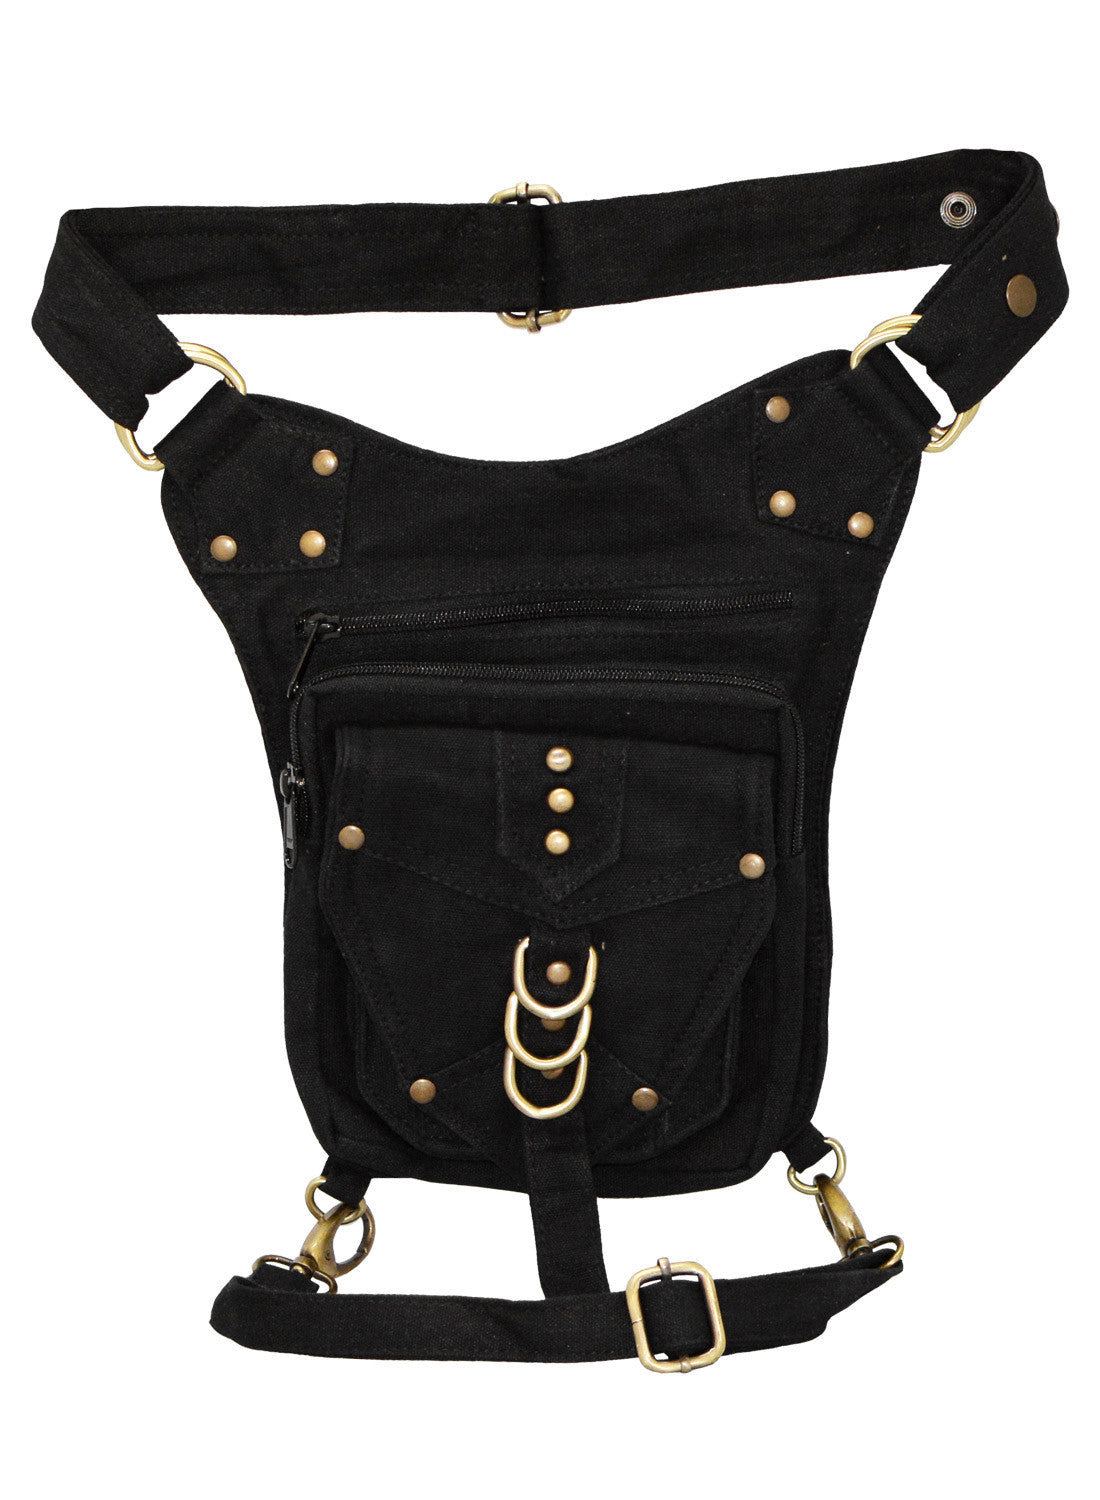 Black Steampunk Cotton Hip Bag